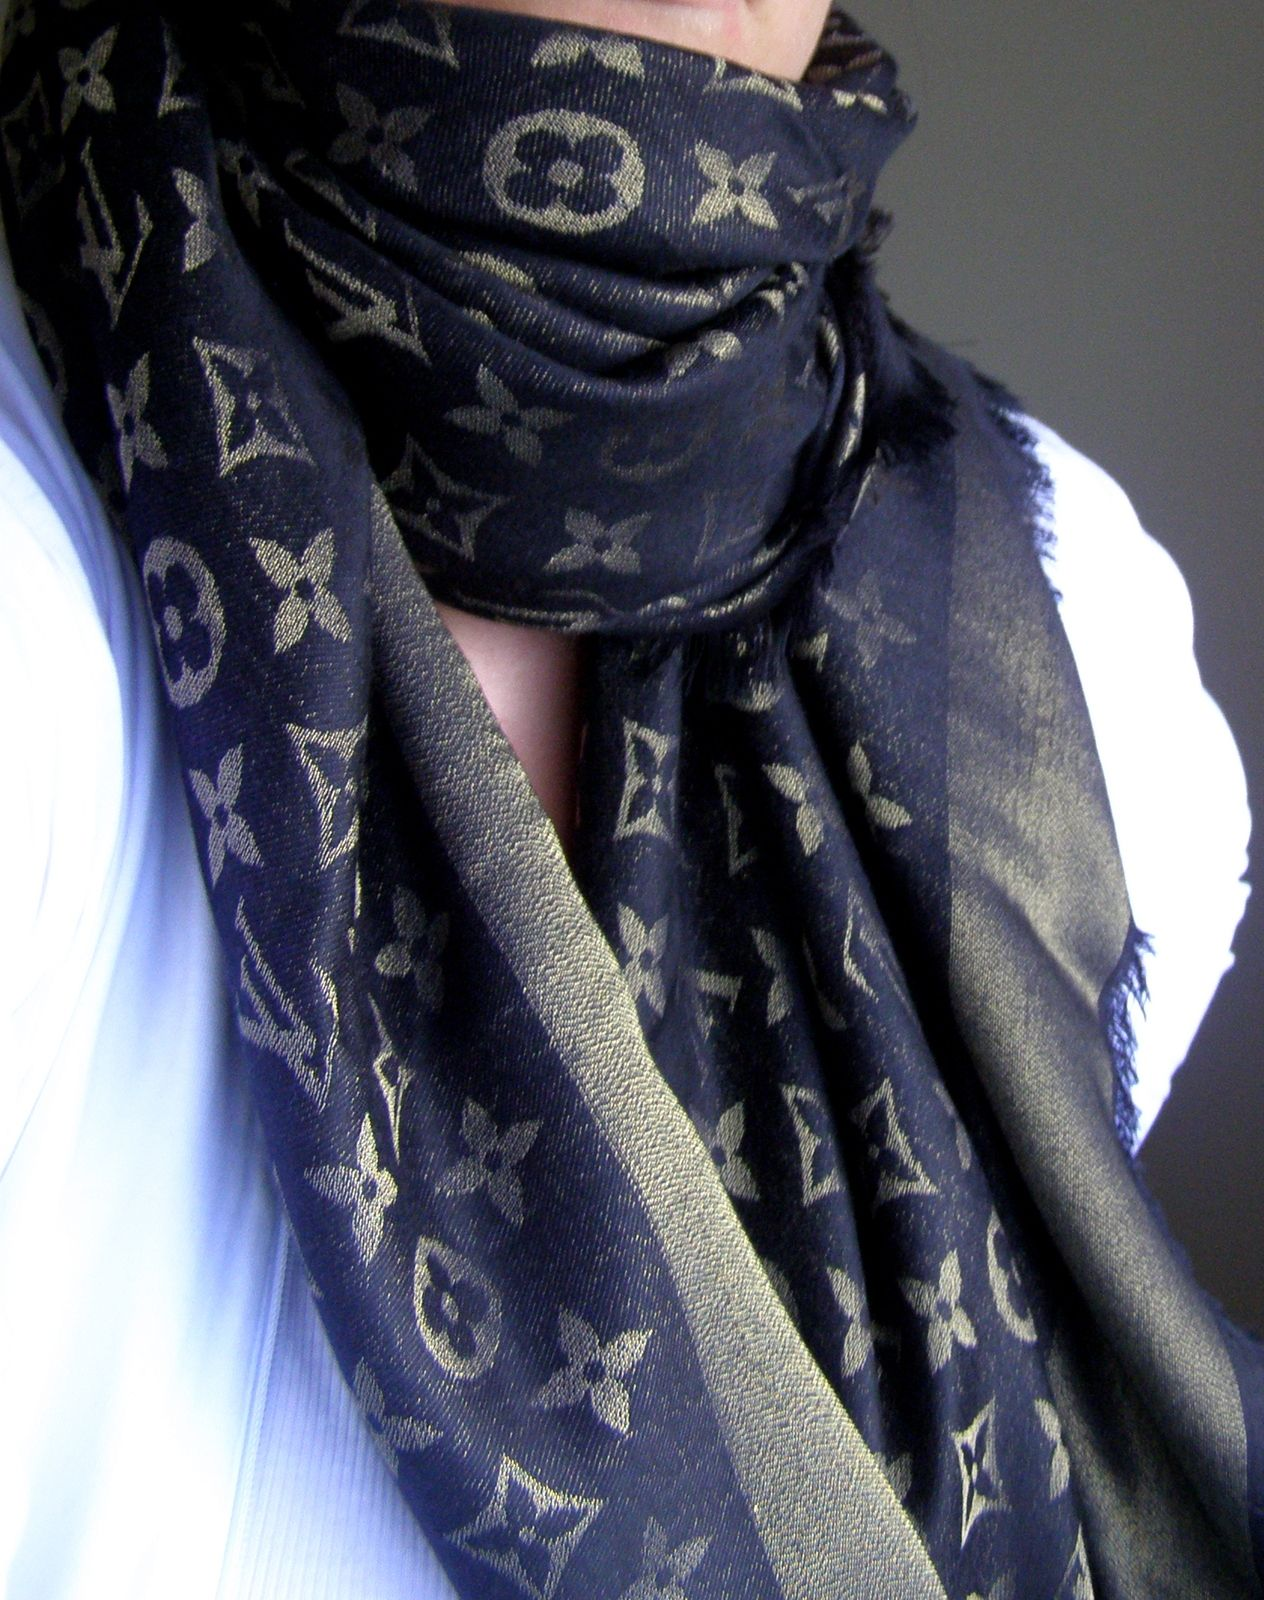 b1723a0a68f Louis Vuitton scarf dark blue with gold | My Style in 2019 | Louis ...